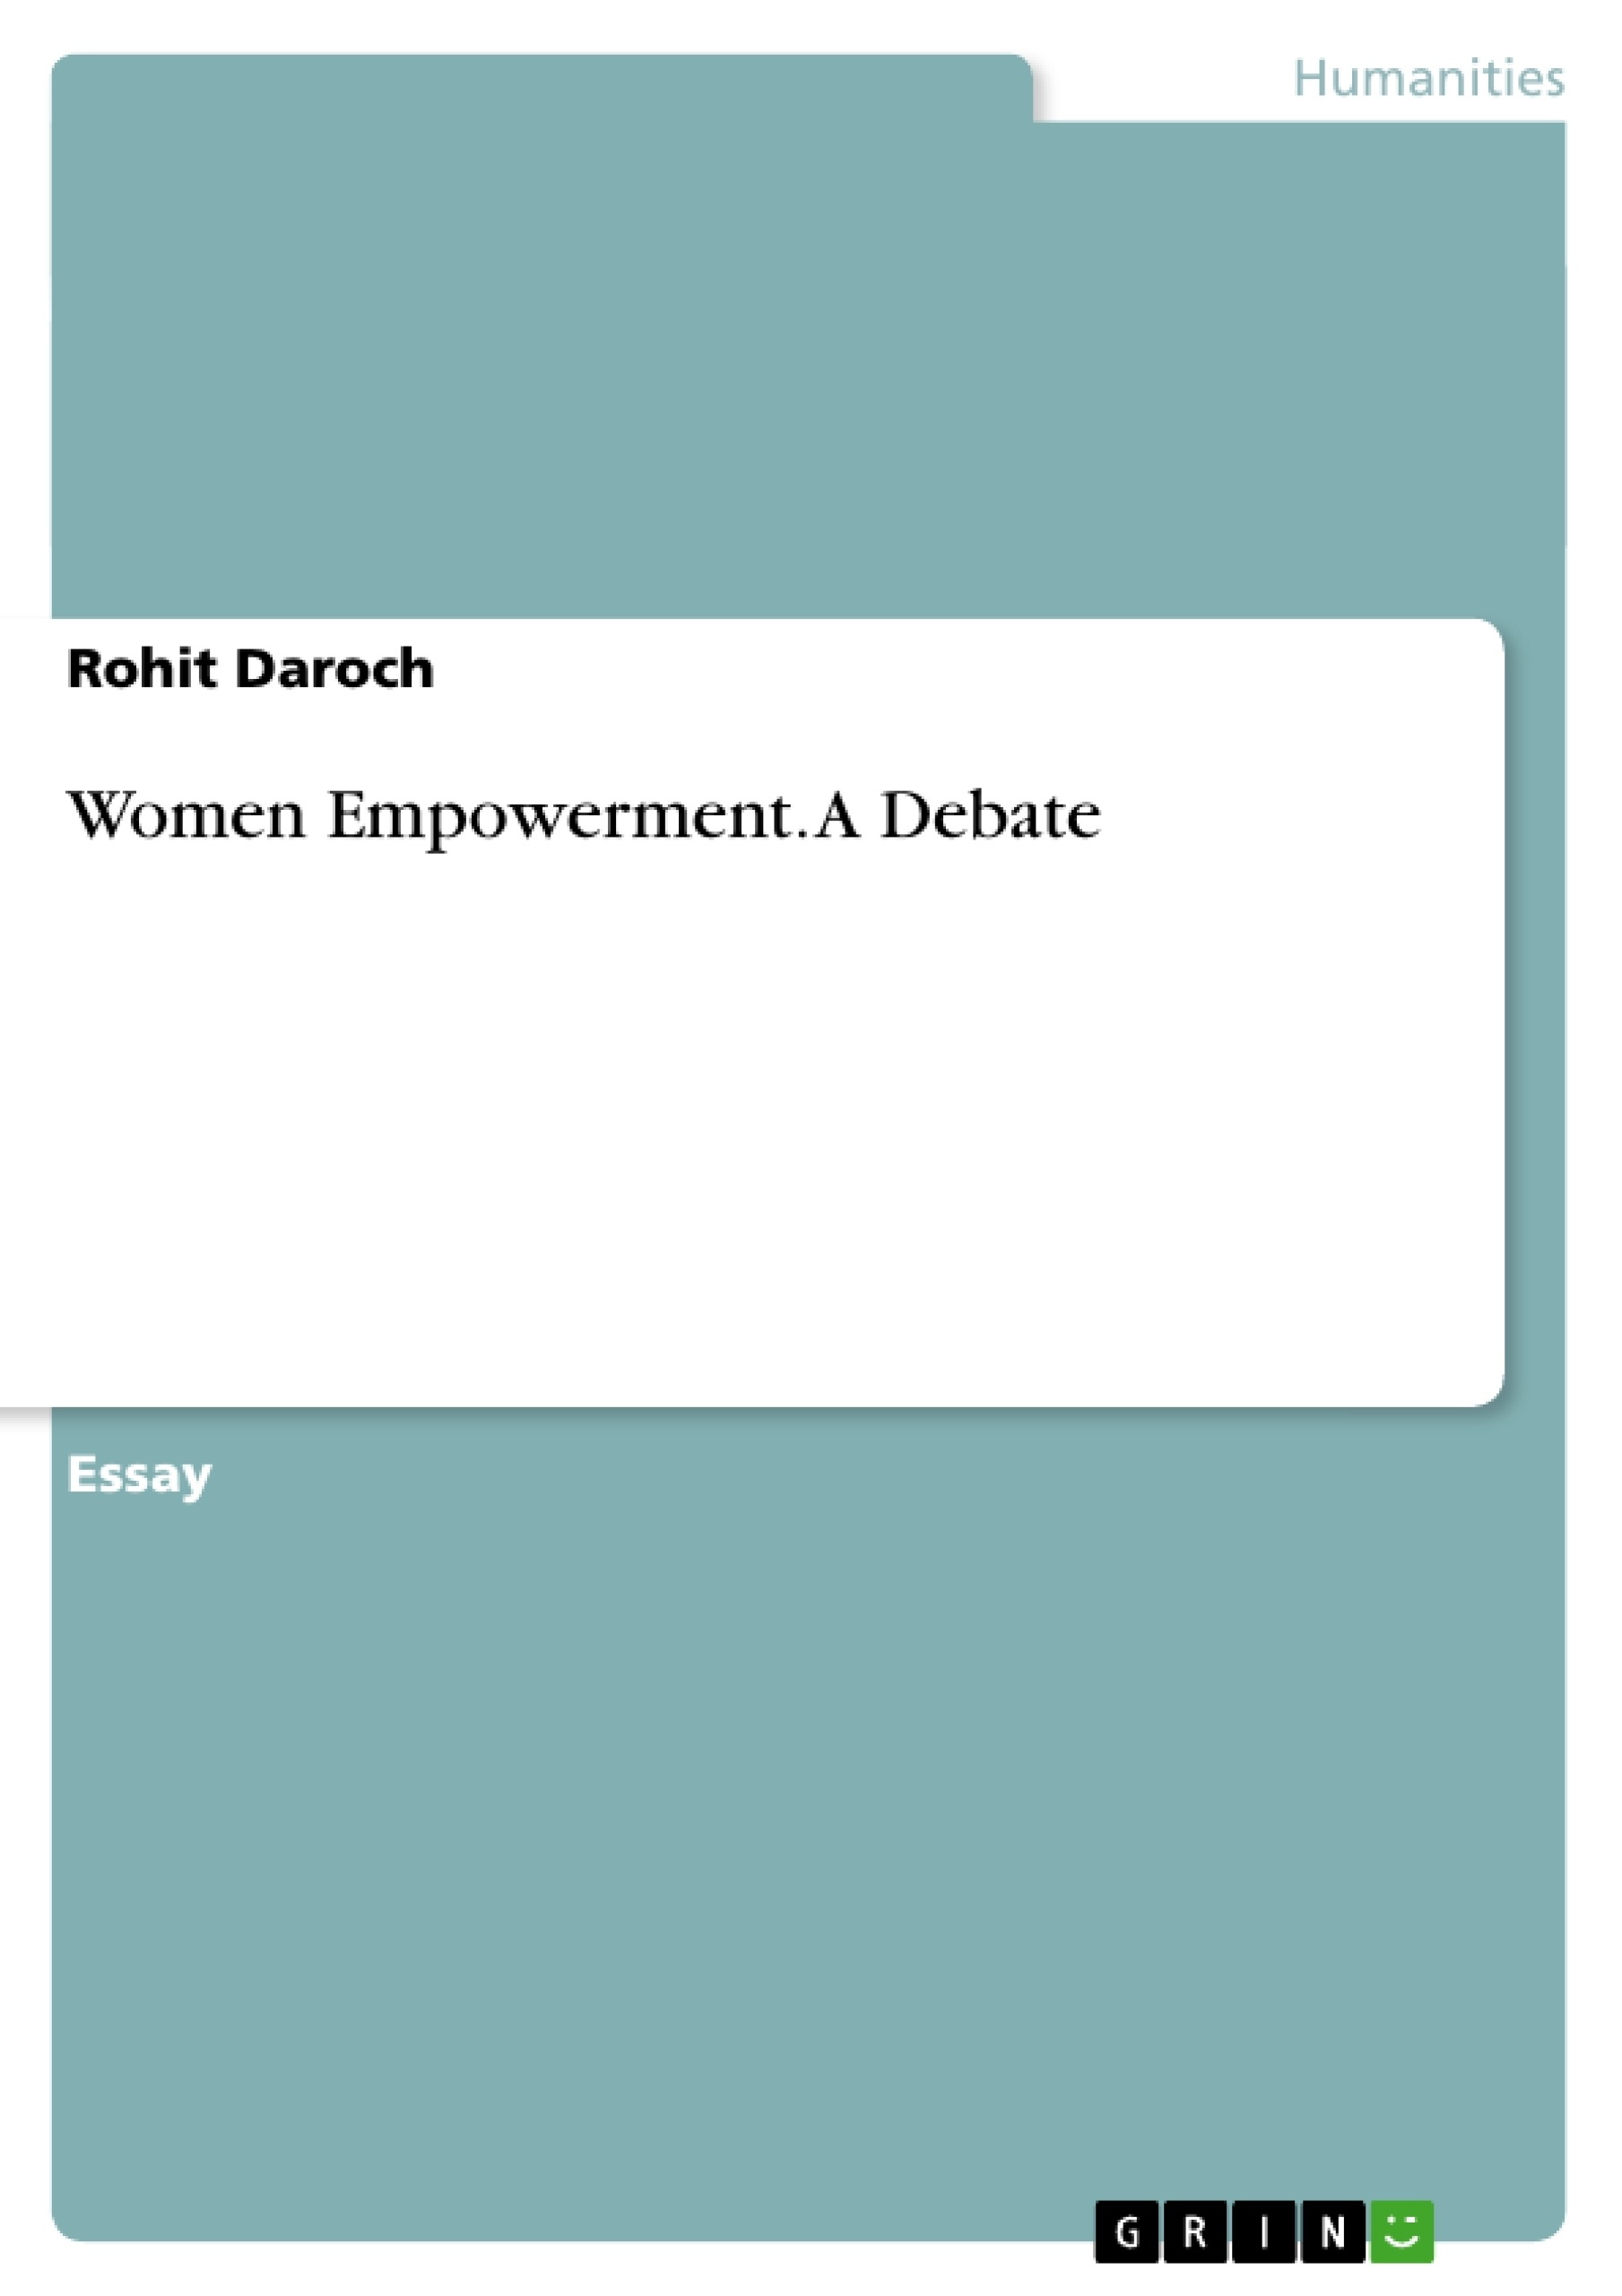 Right of women essay